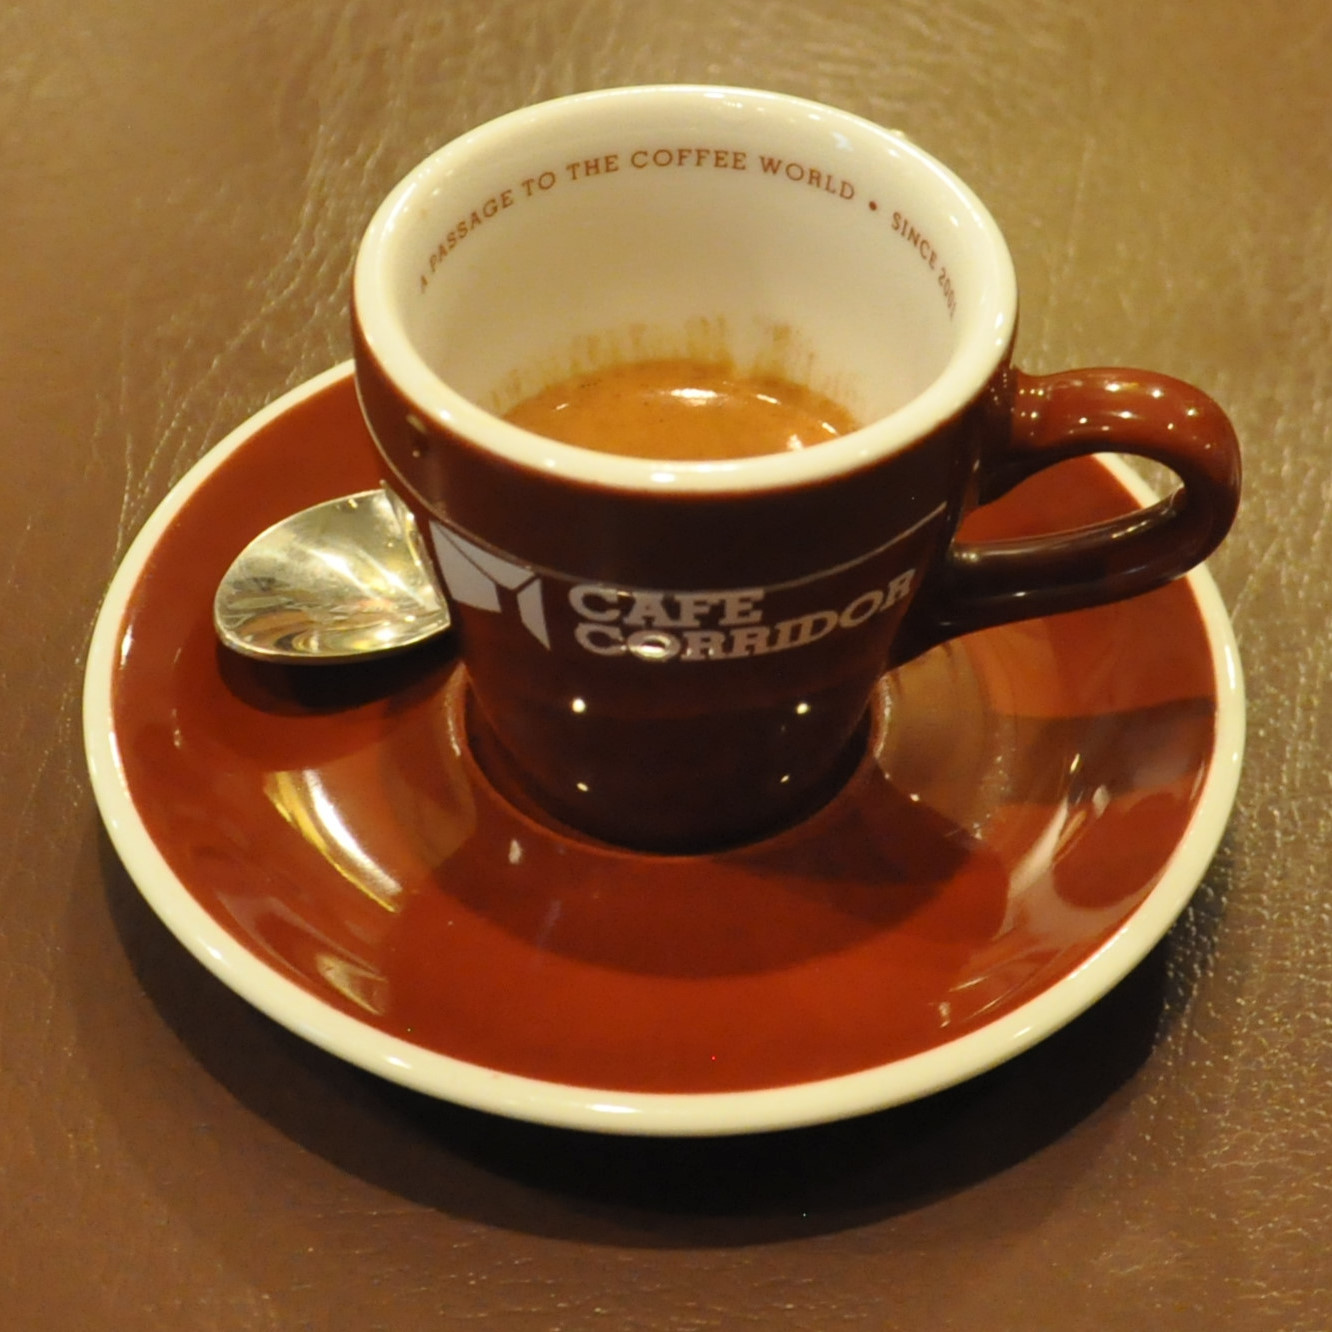 A single-origin Colombian espresso in a branded cup from Cafe Corridor in Hong Kong with 'A passage to the coffee world since 2001' written on the inside rim.